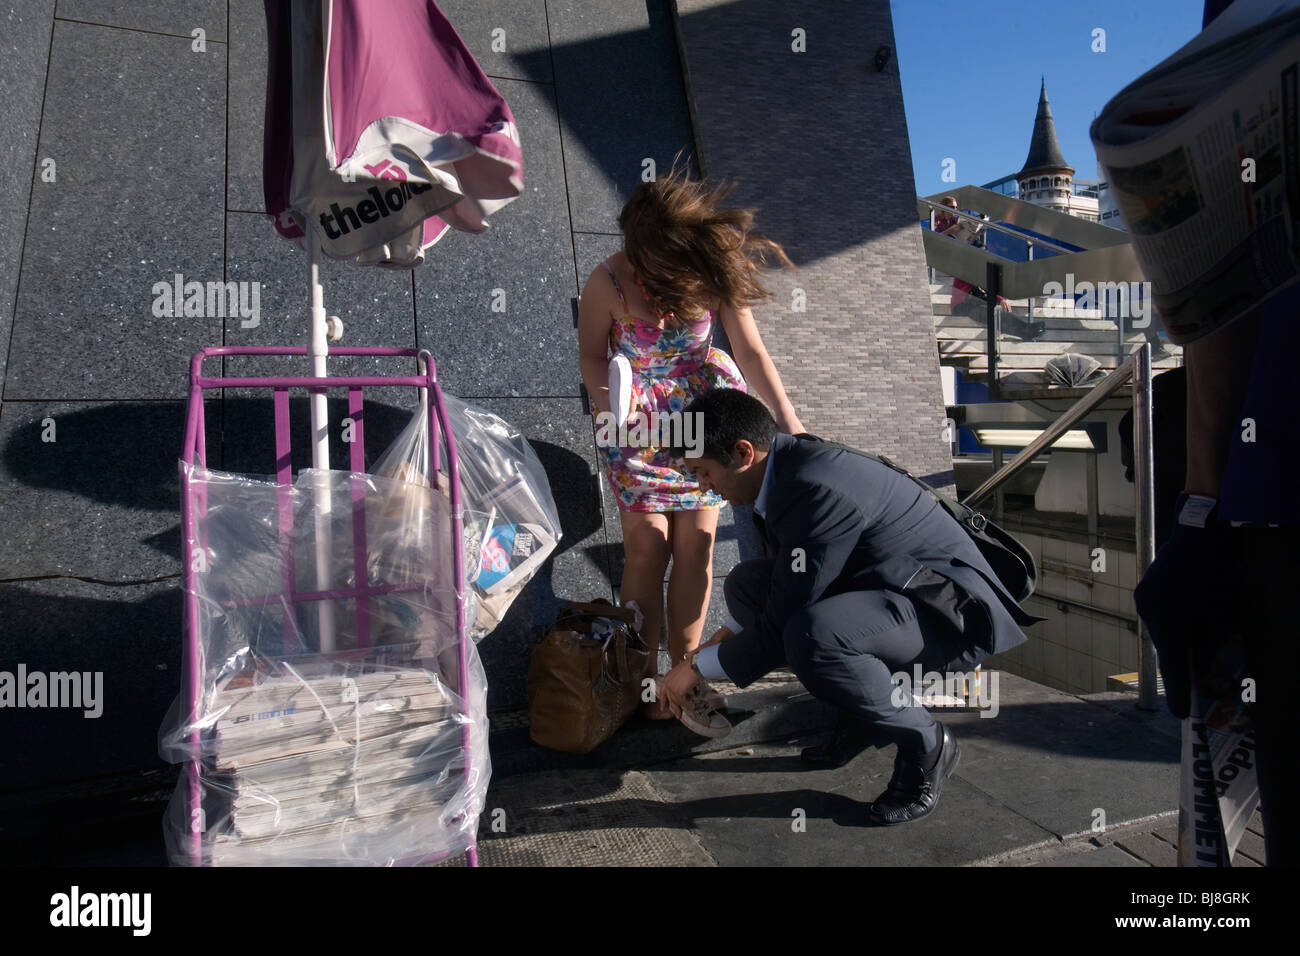 a woman being helped with her shoe in london - Stock Image